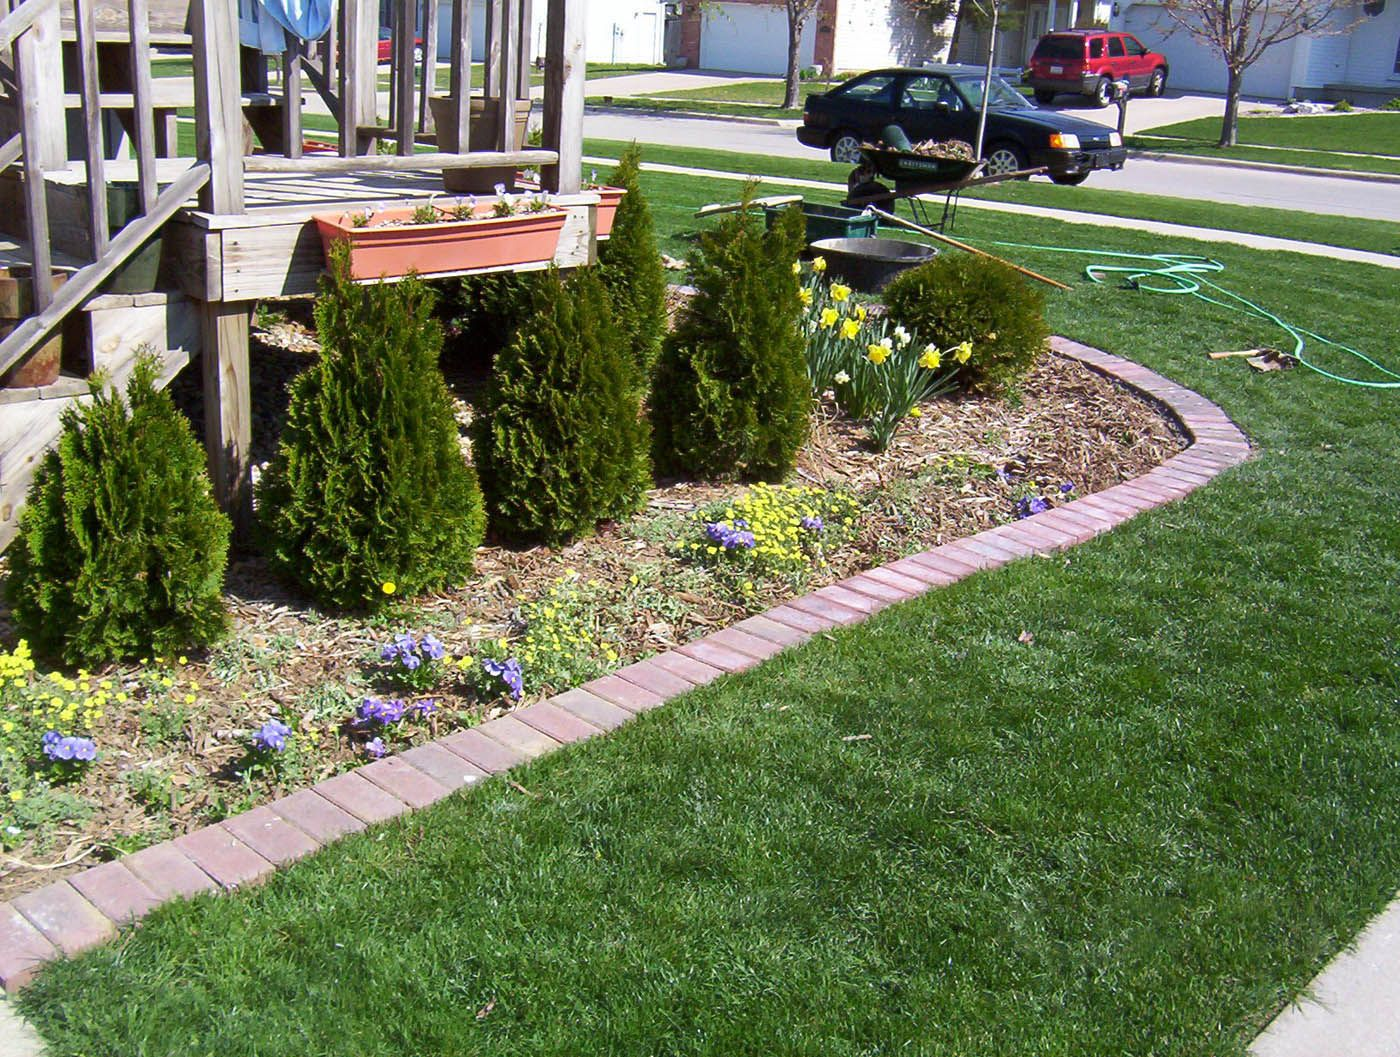 Simple flower bed edging design ideas lawn care for Basic landscaping